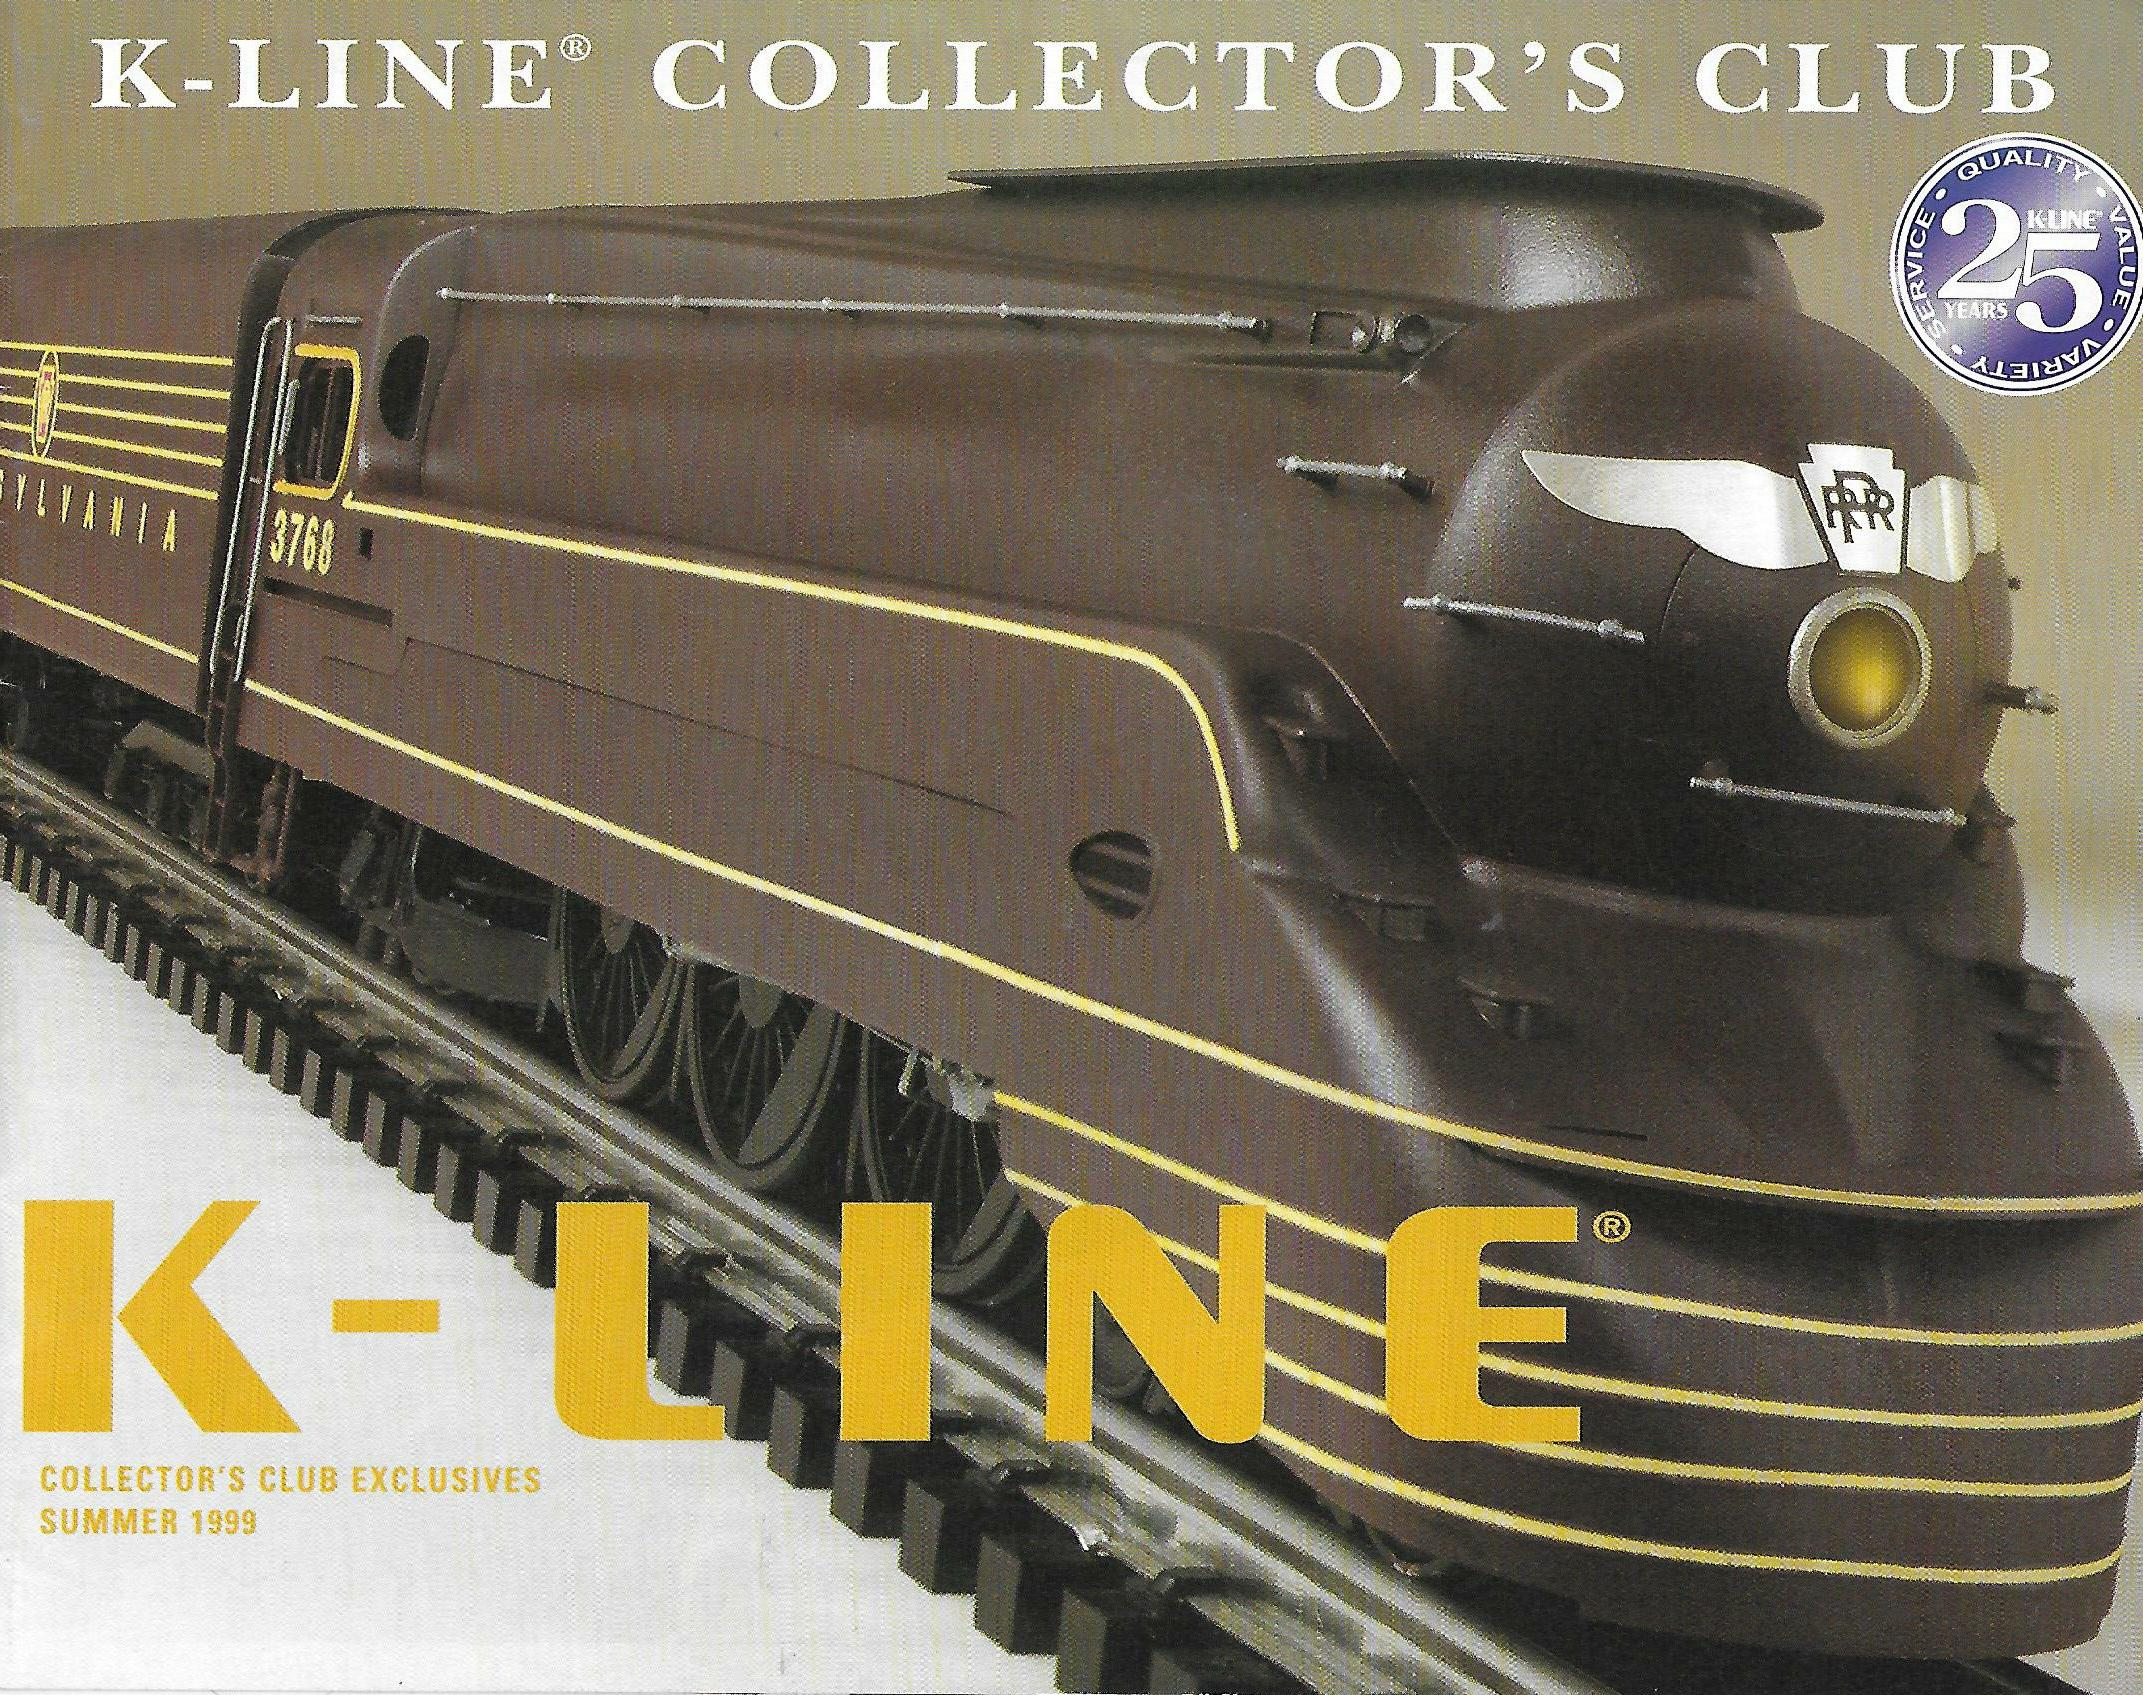 K-Line 1999 Collector's Club Exclusives Catalog image